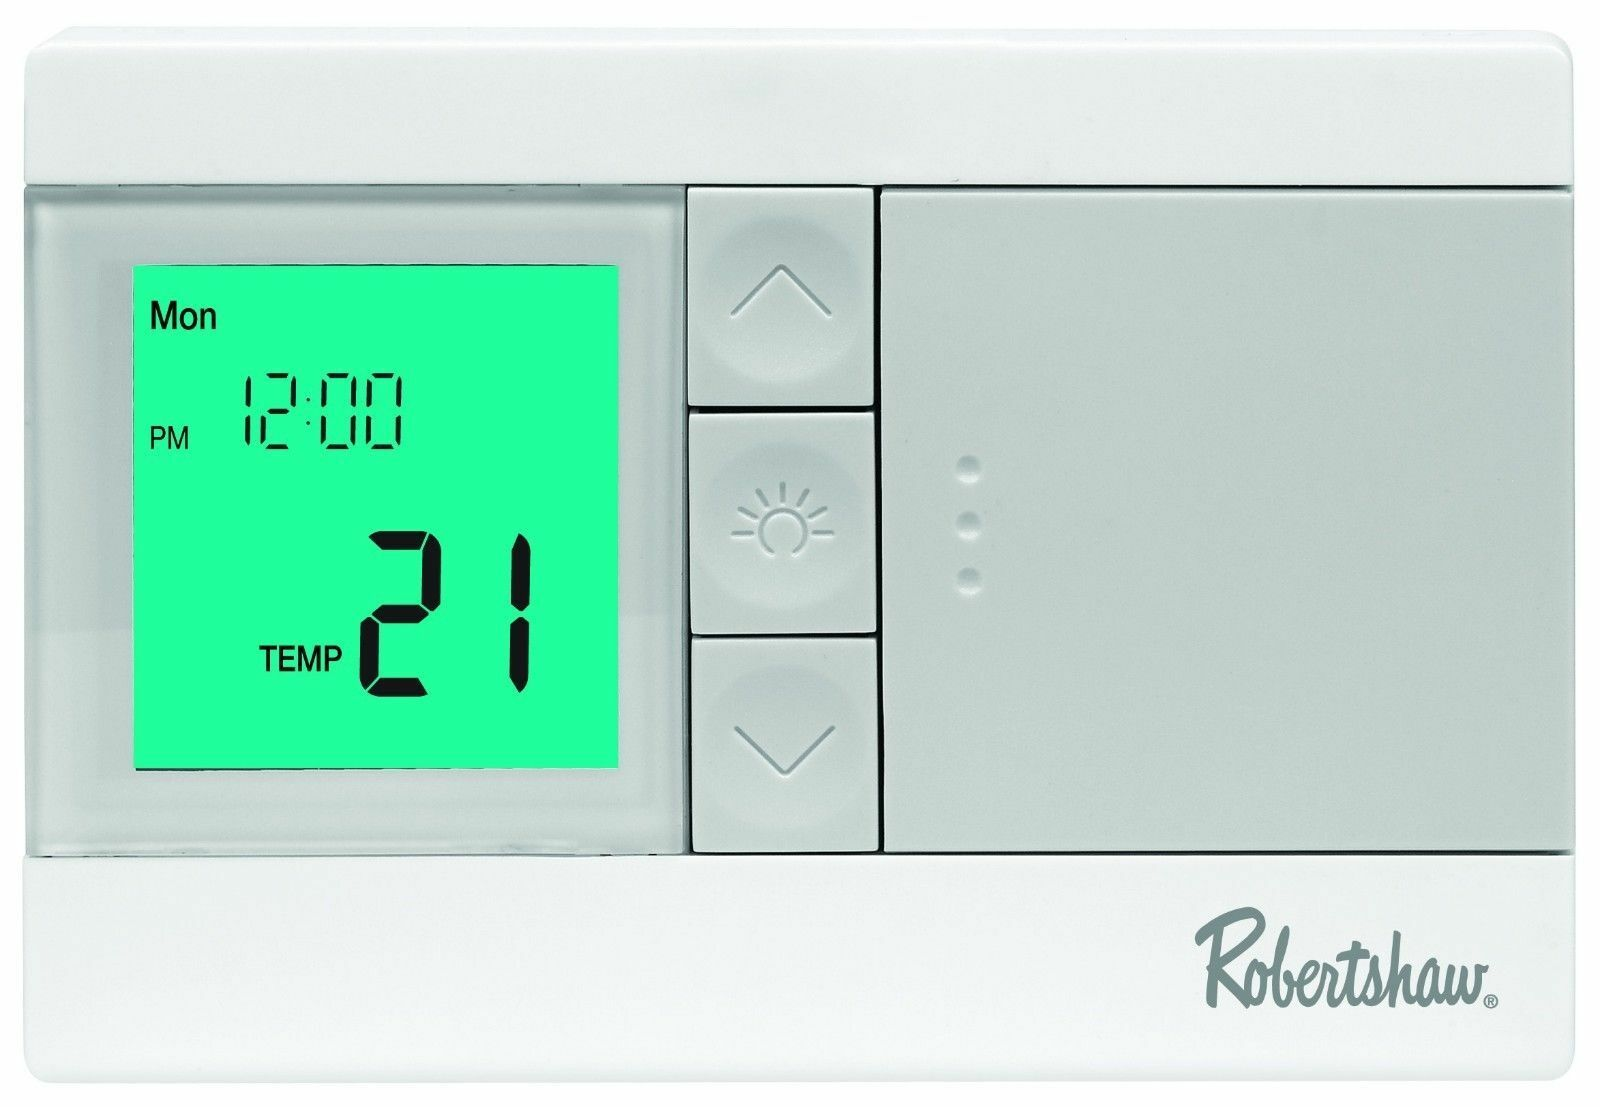 robertshaw thermostat wiring diagram square venn printable top 10 programmable thermostats ebay